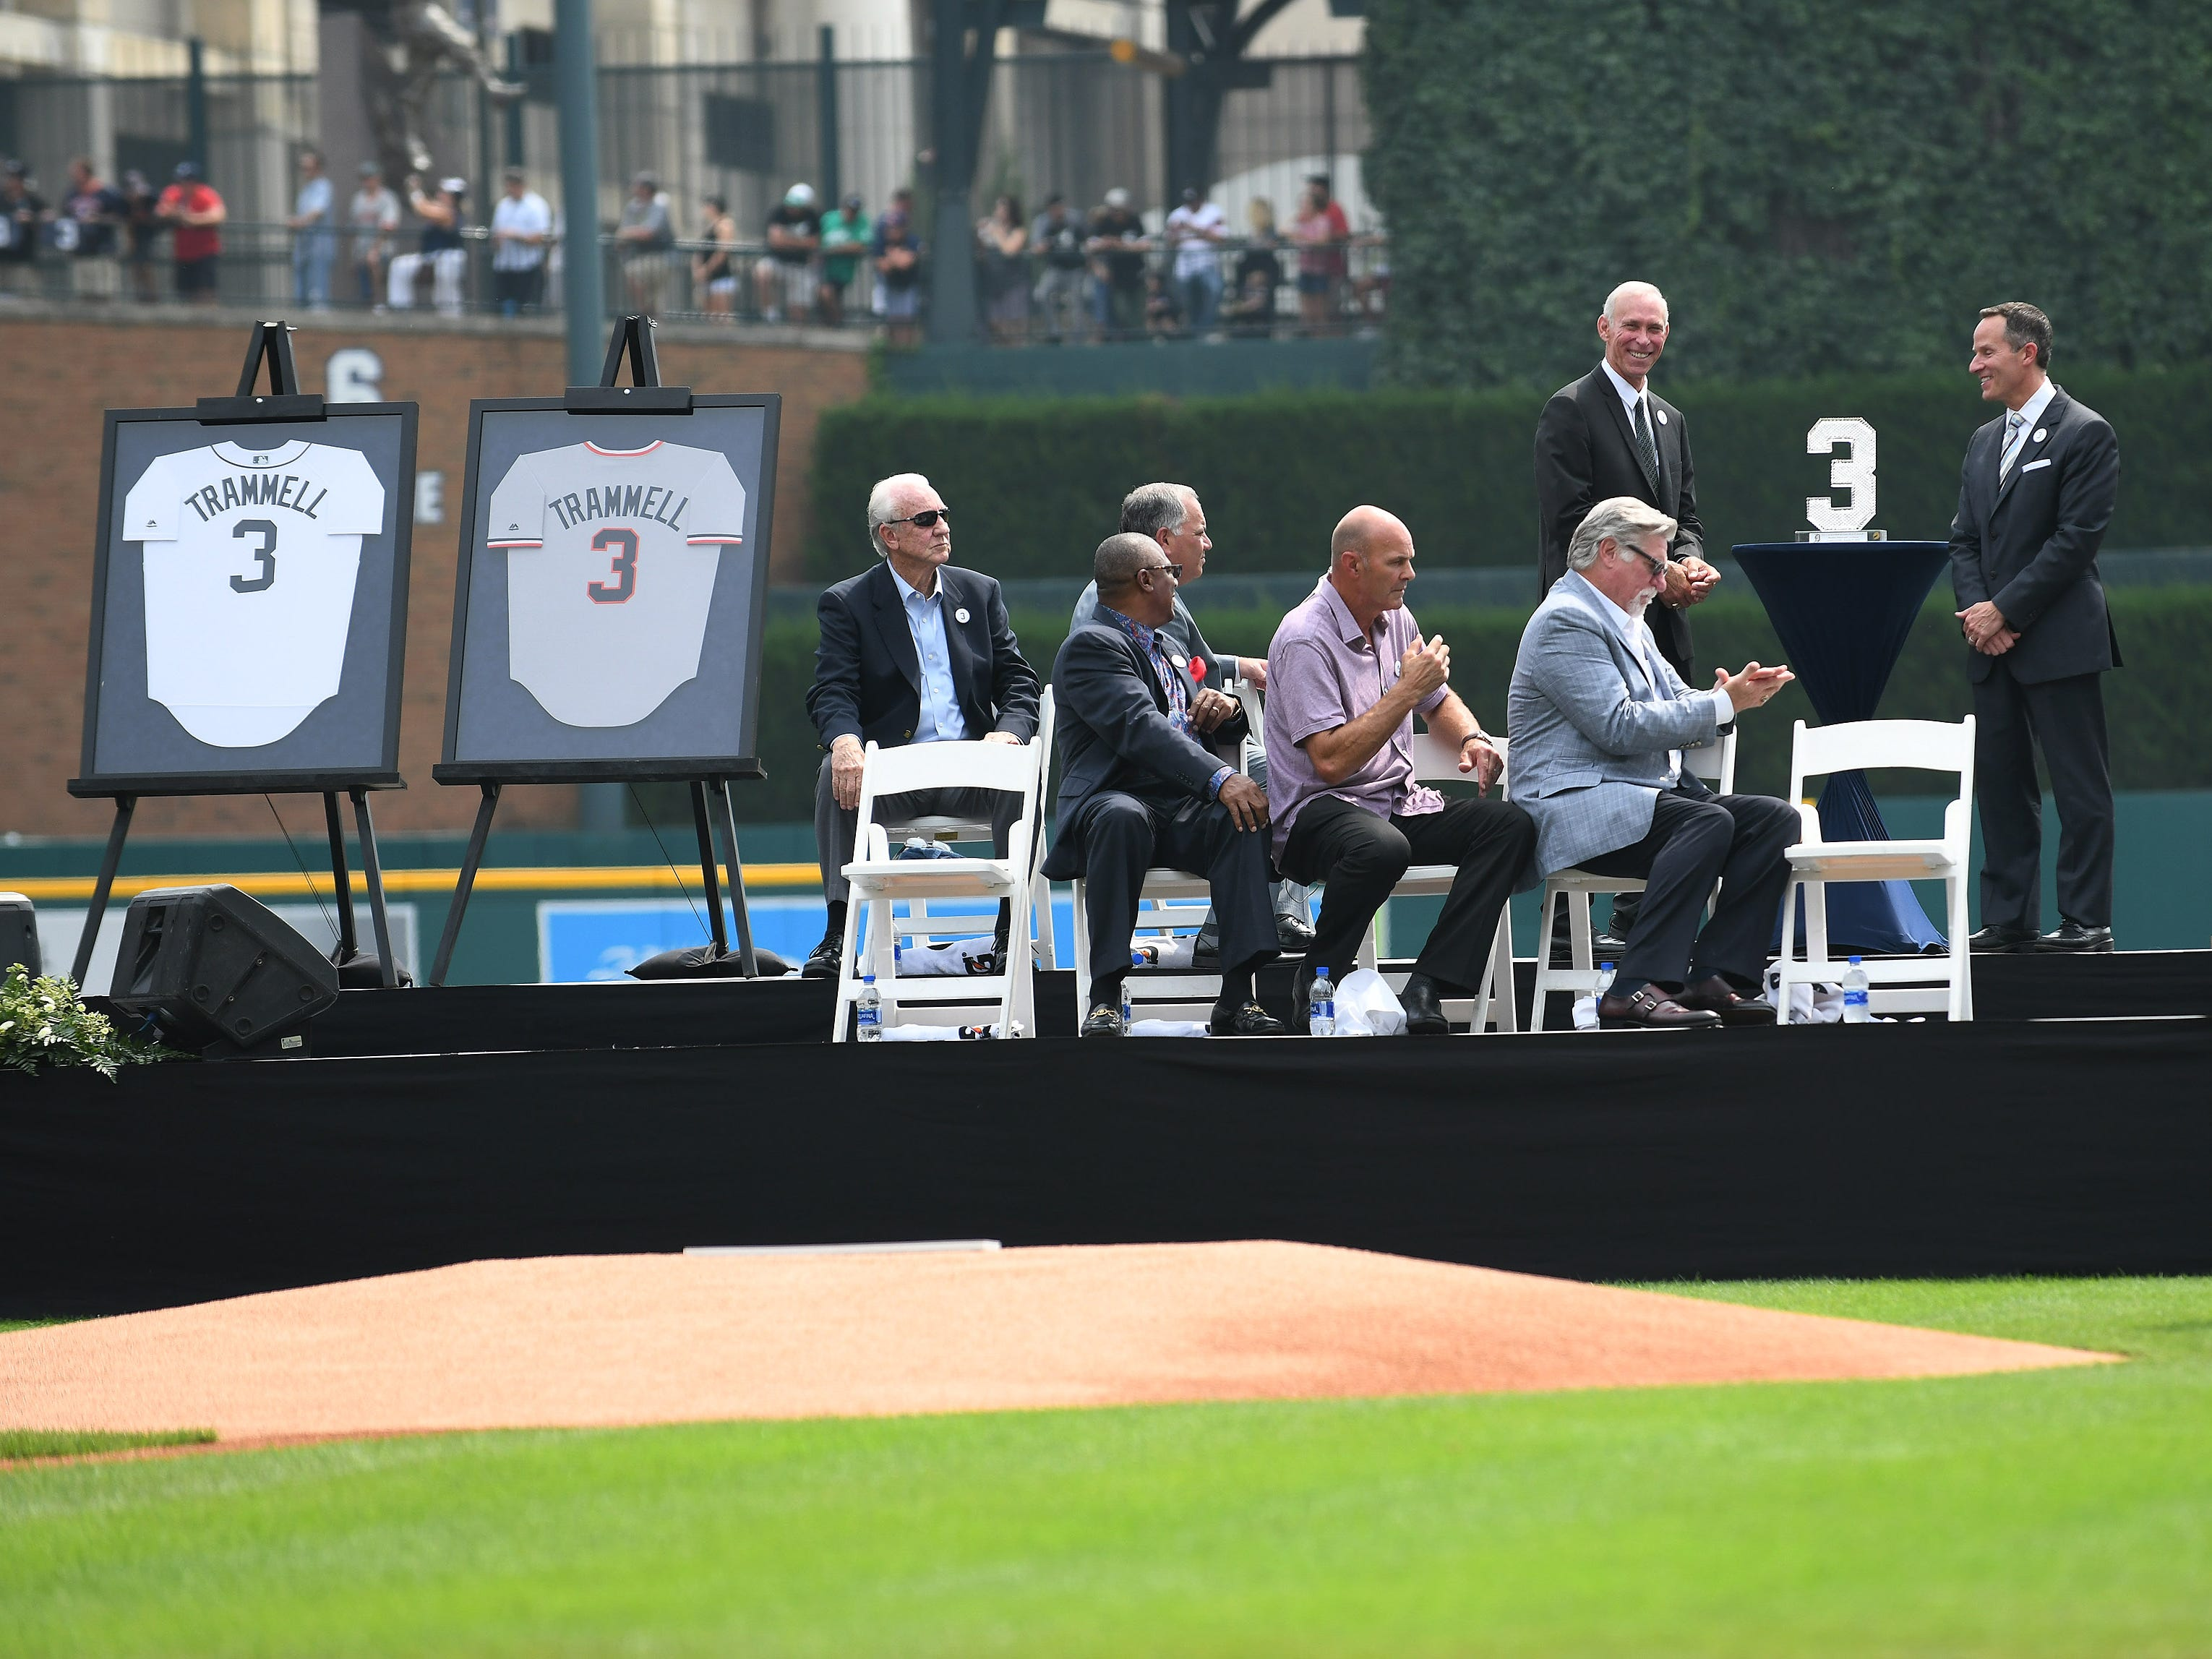 President and CEO of Ilitch Holdings, Inc. Chris Ilitch, right, presents Alan Trammell with a Waterford crystal of his number 3 during the ceremony.